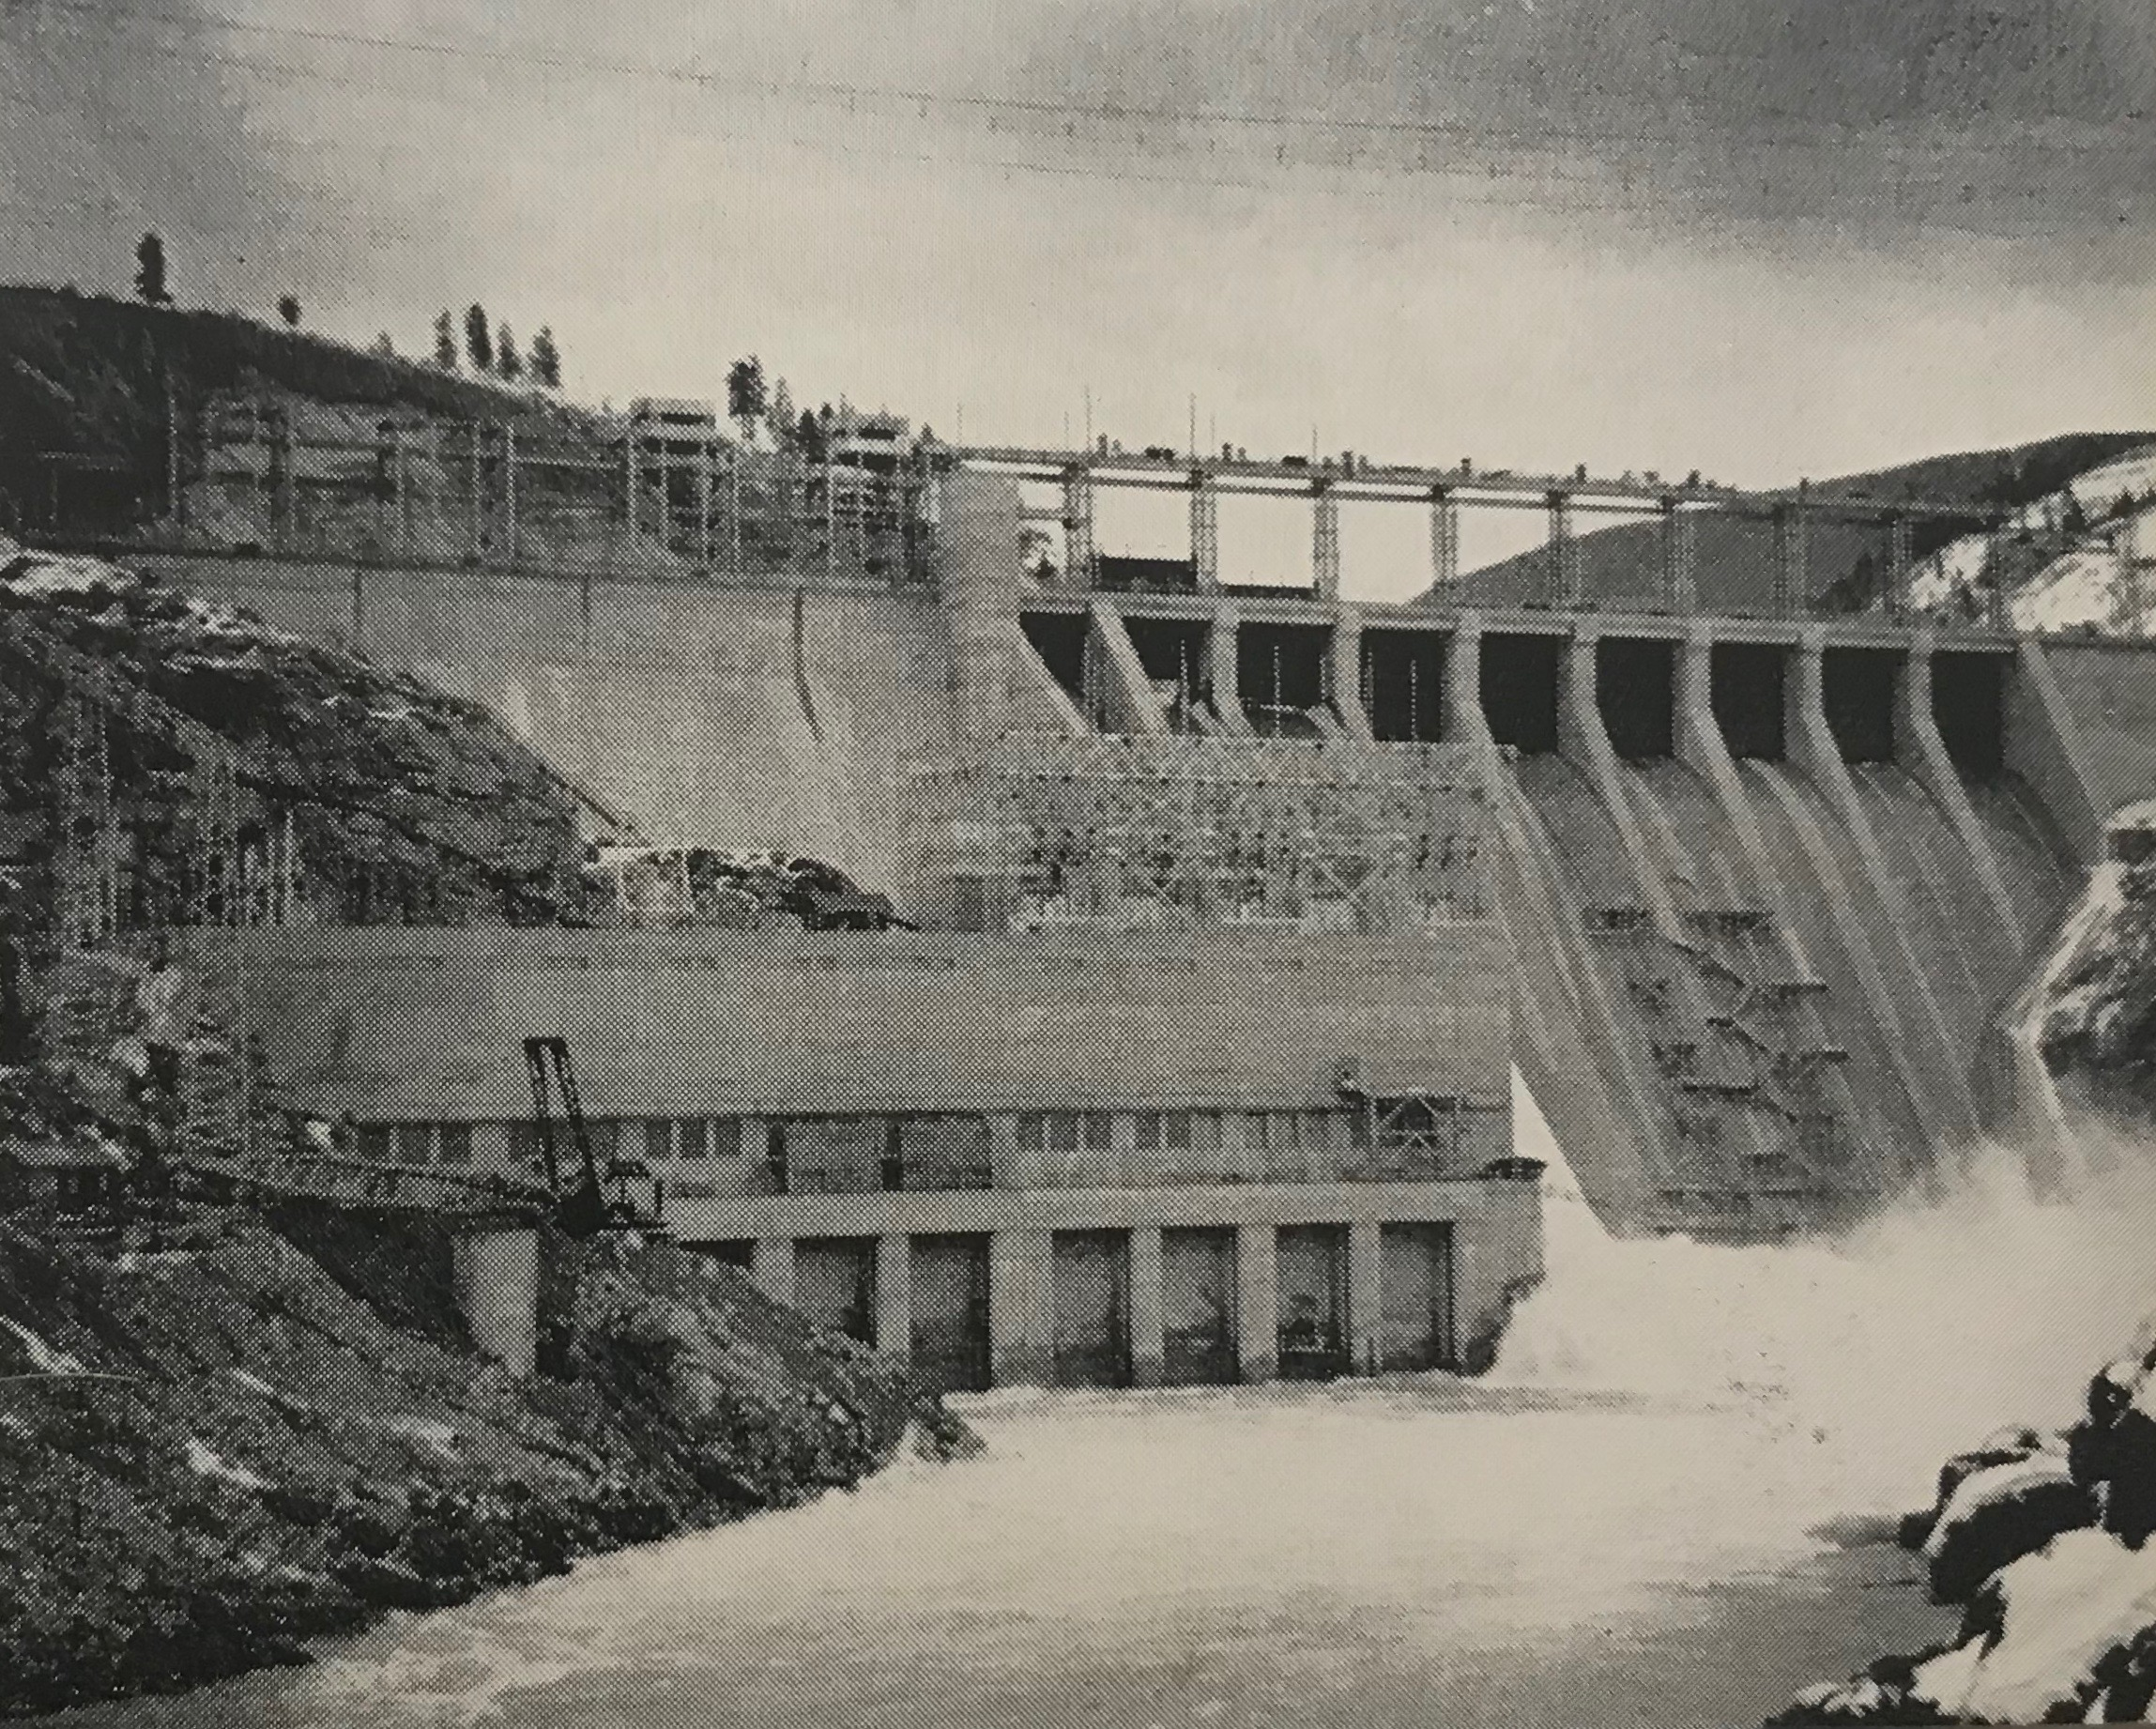 1954:The Waneta Plant - Experiencing a post-war boom, a private CM&S contractor is hired to build a dam on the Pend D'Orielle River, named the Waneta Dam. This dam was first planned in the 1920s with the goal to build the plant in the 1930s. Power lines were even built to the planned site in anticipation of its construction. However, the impact of the Great Depression led to the project being abandoned until the 1950s.This photo, which was published in the April 1954 edition of Cominco Magazine shows the Waneta Dam shortly after becoming operational.